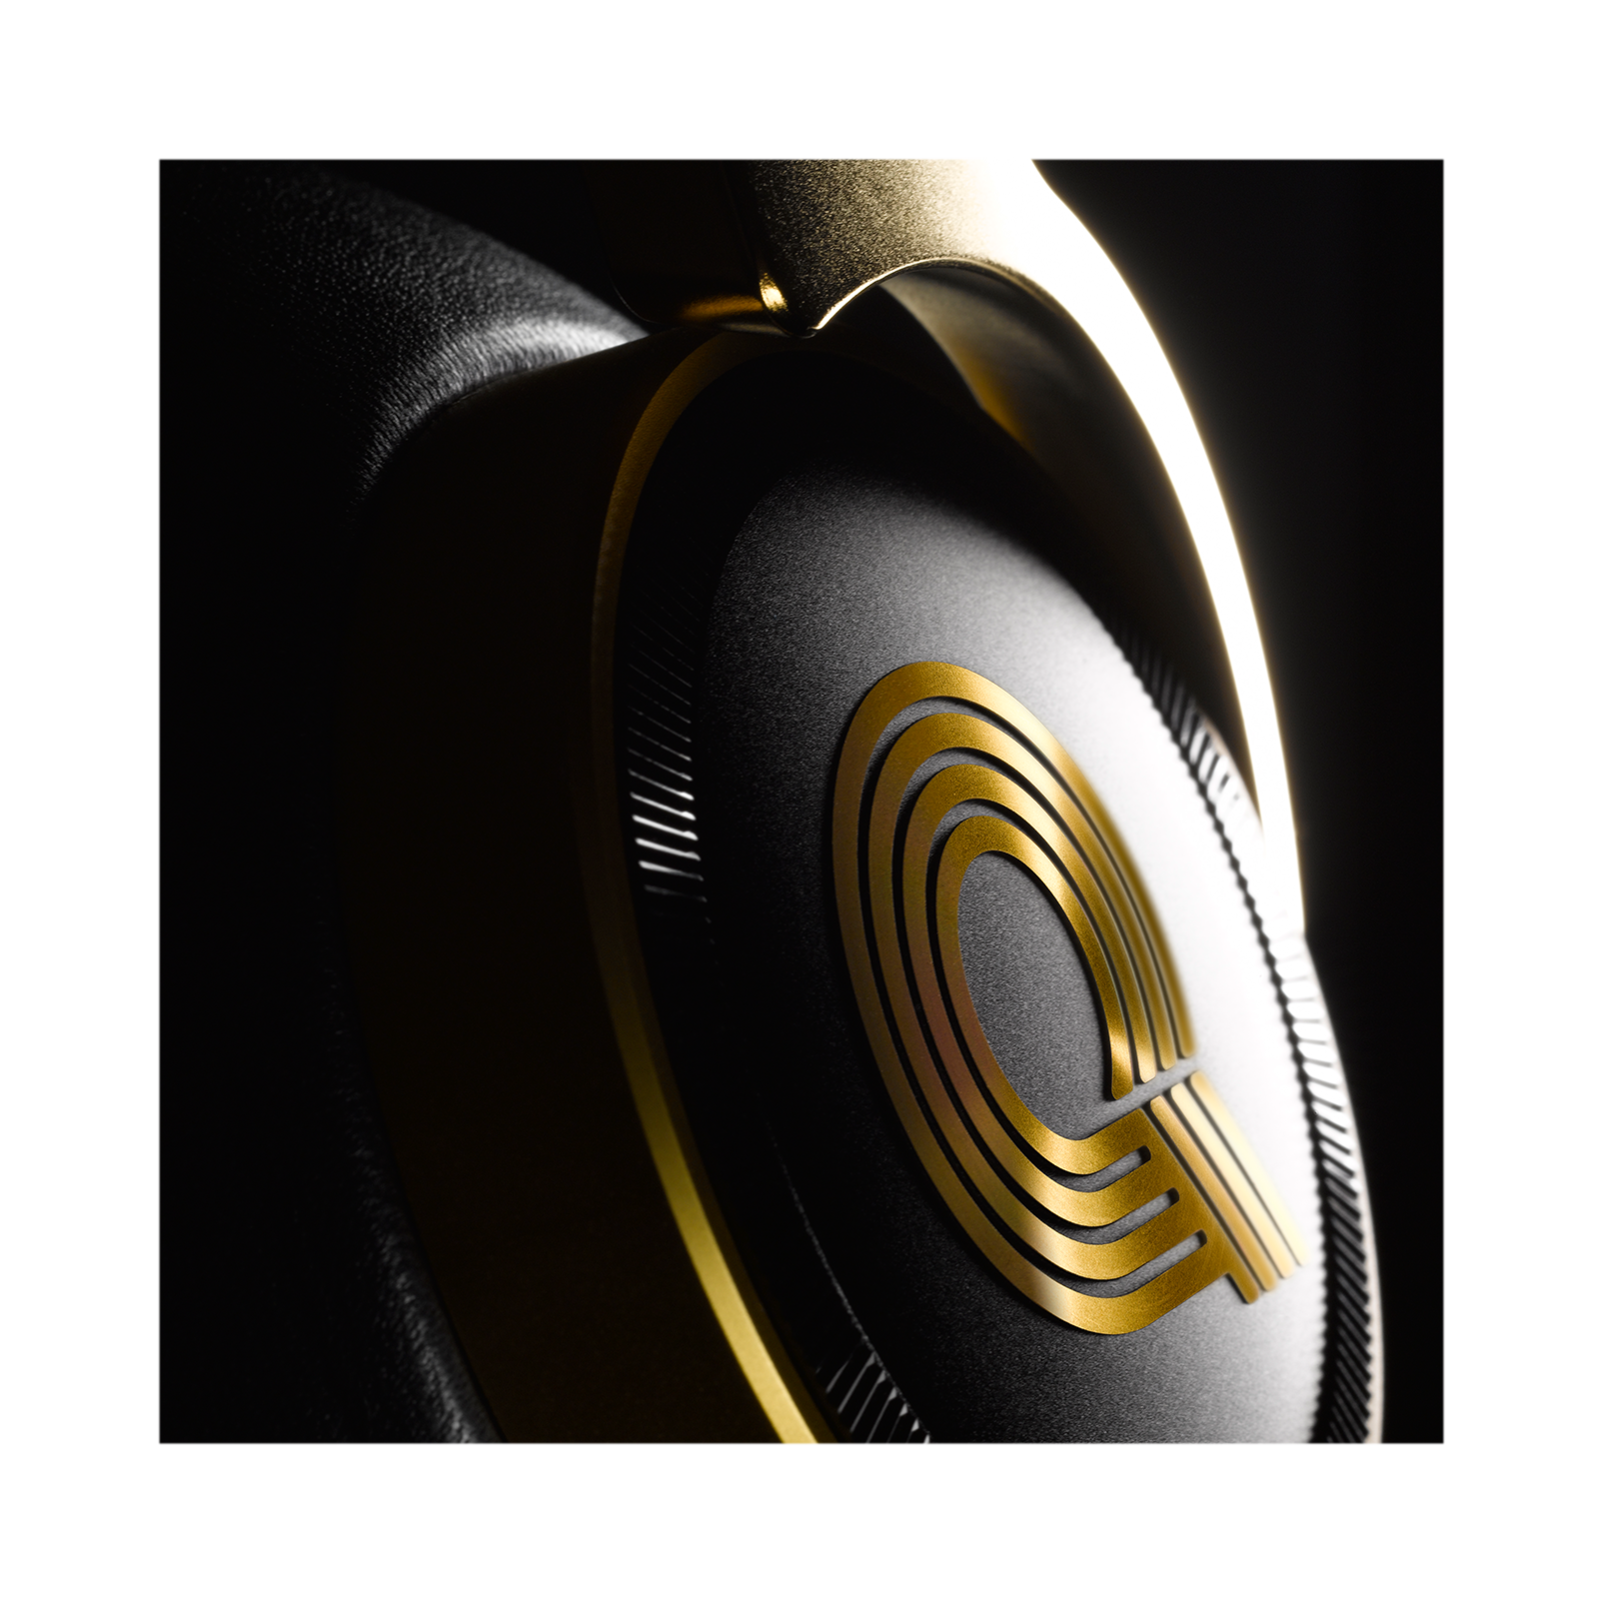 N90Q - Gold - Reference class auto-calibrating noise-cancelling headphones - Detailshot 10